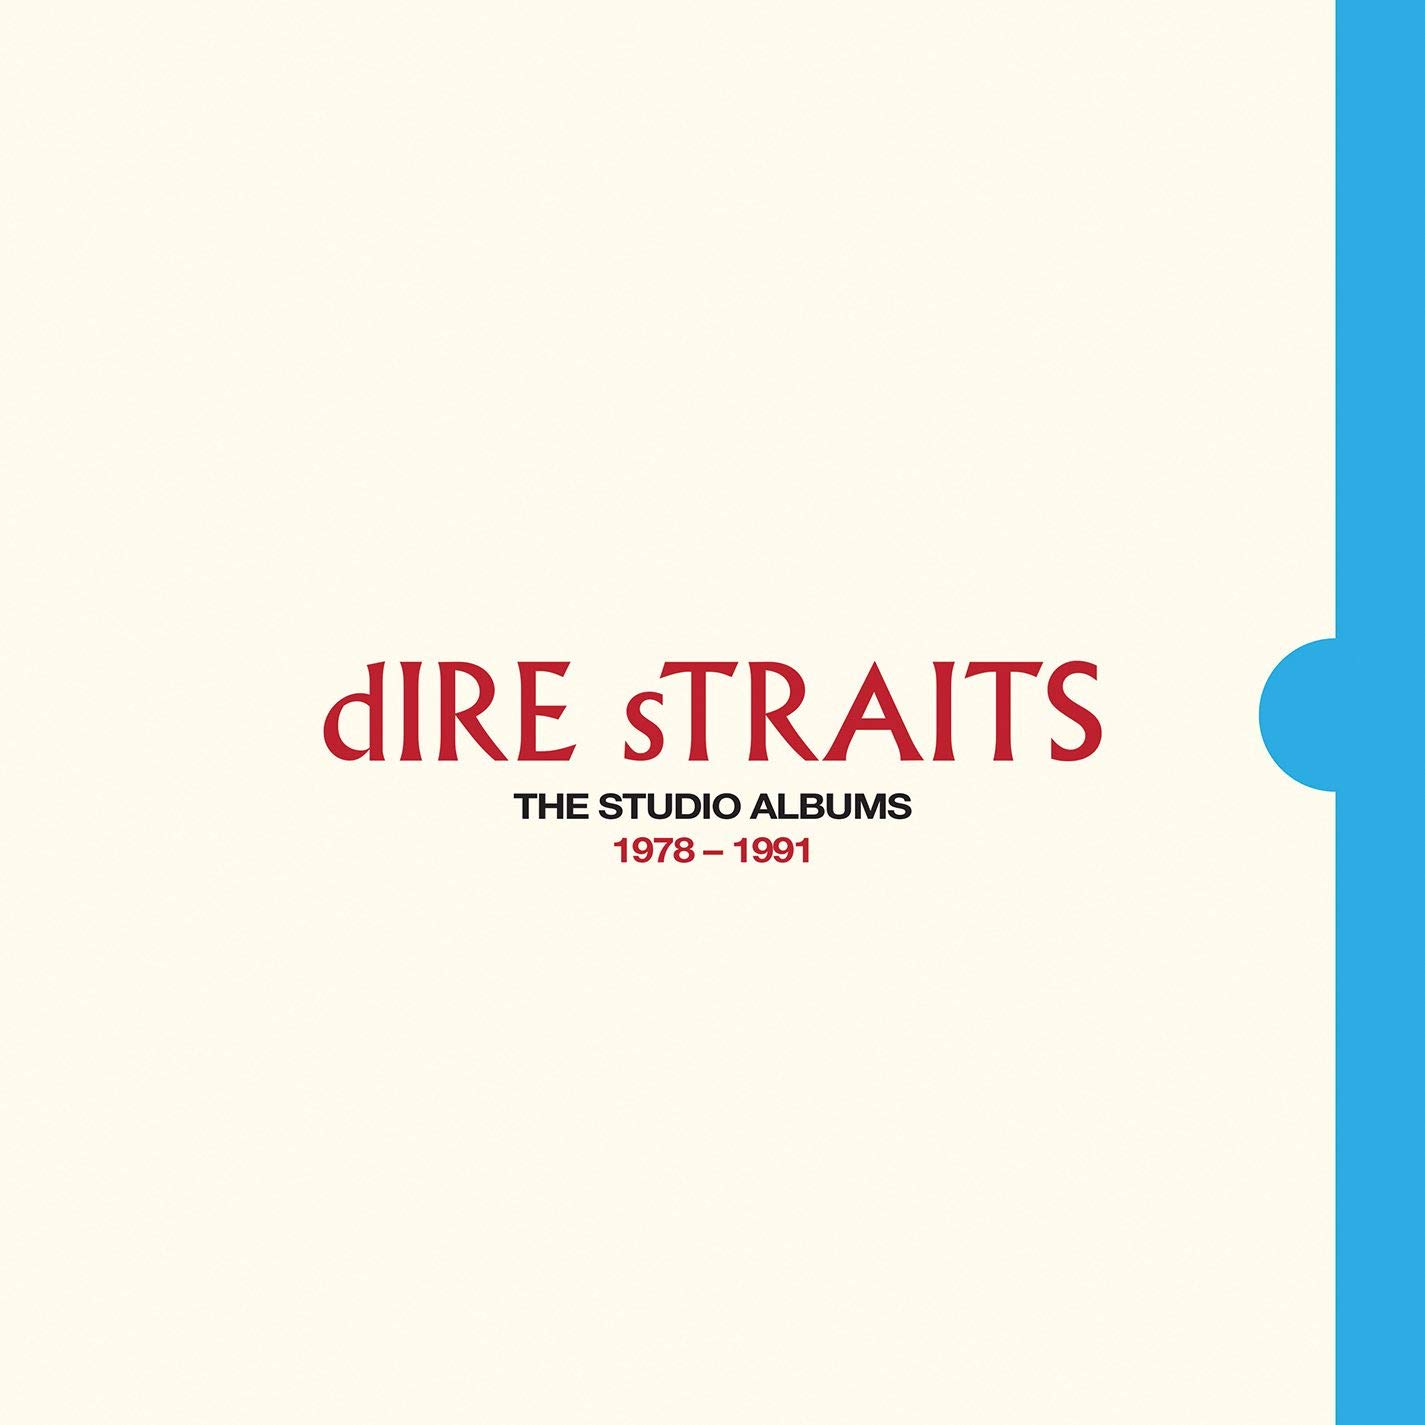 Dire Straits-The Studio Albums 1978-1991-(00602508391361)-REMASTERED LIMITED EDITION BOXSET-6CD-FLAC-2020-WRE